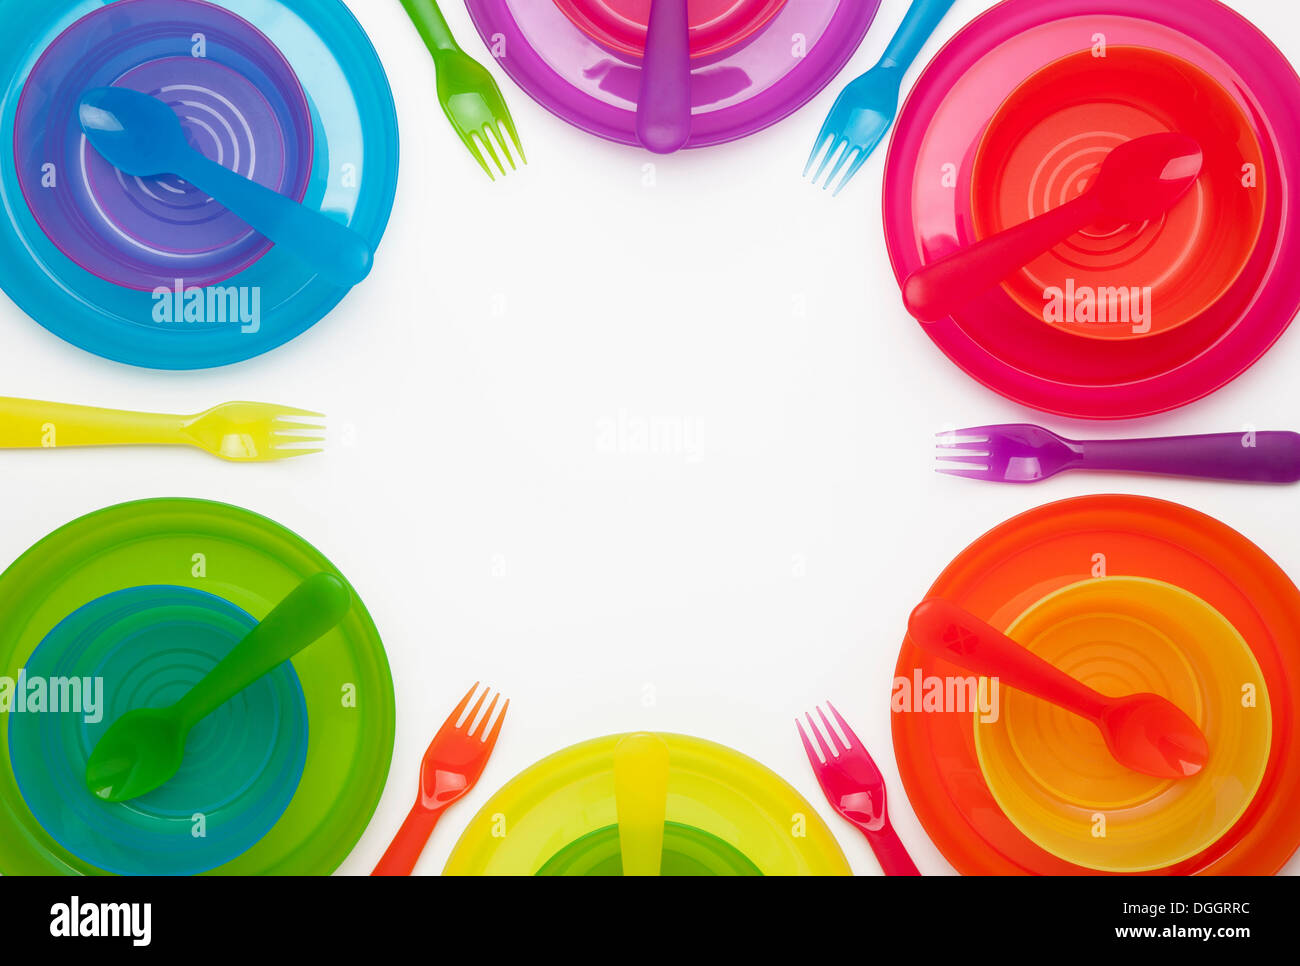 Colourful plastic plates cups bowls spoons and forks  sc 1 st  Alamy & Colourful plastic plates cups bowls spoons and forks Stock Photo ...